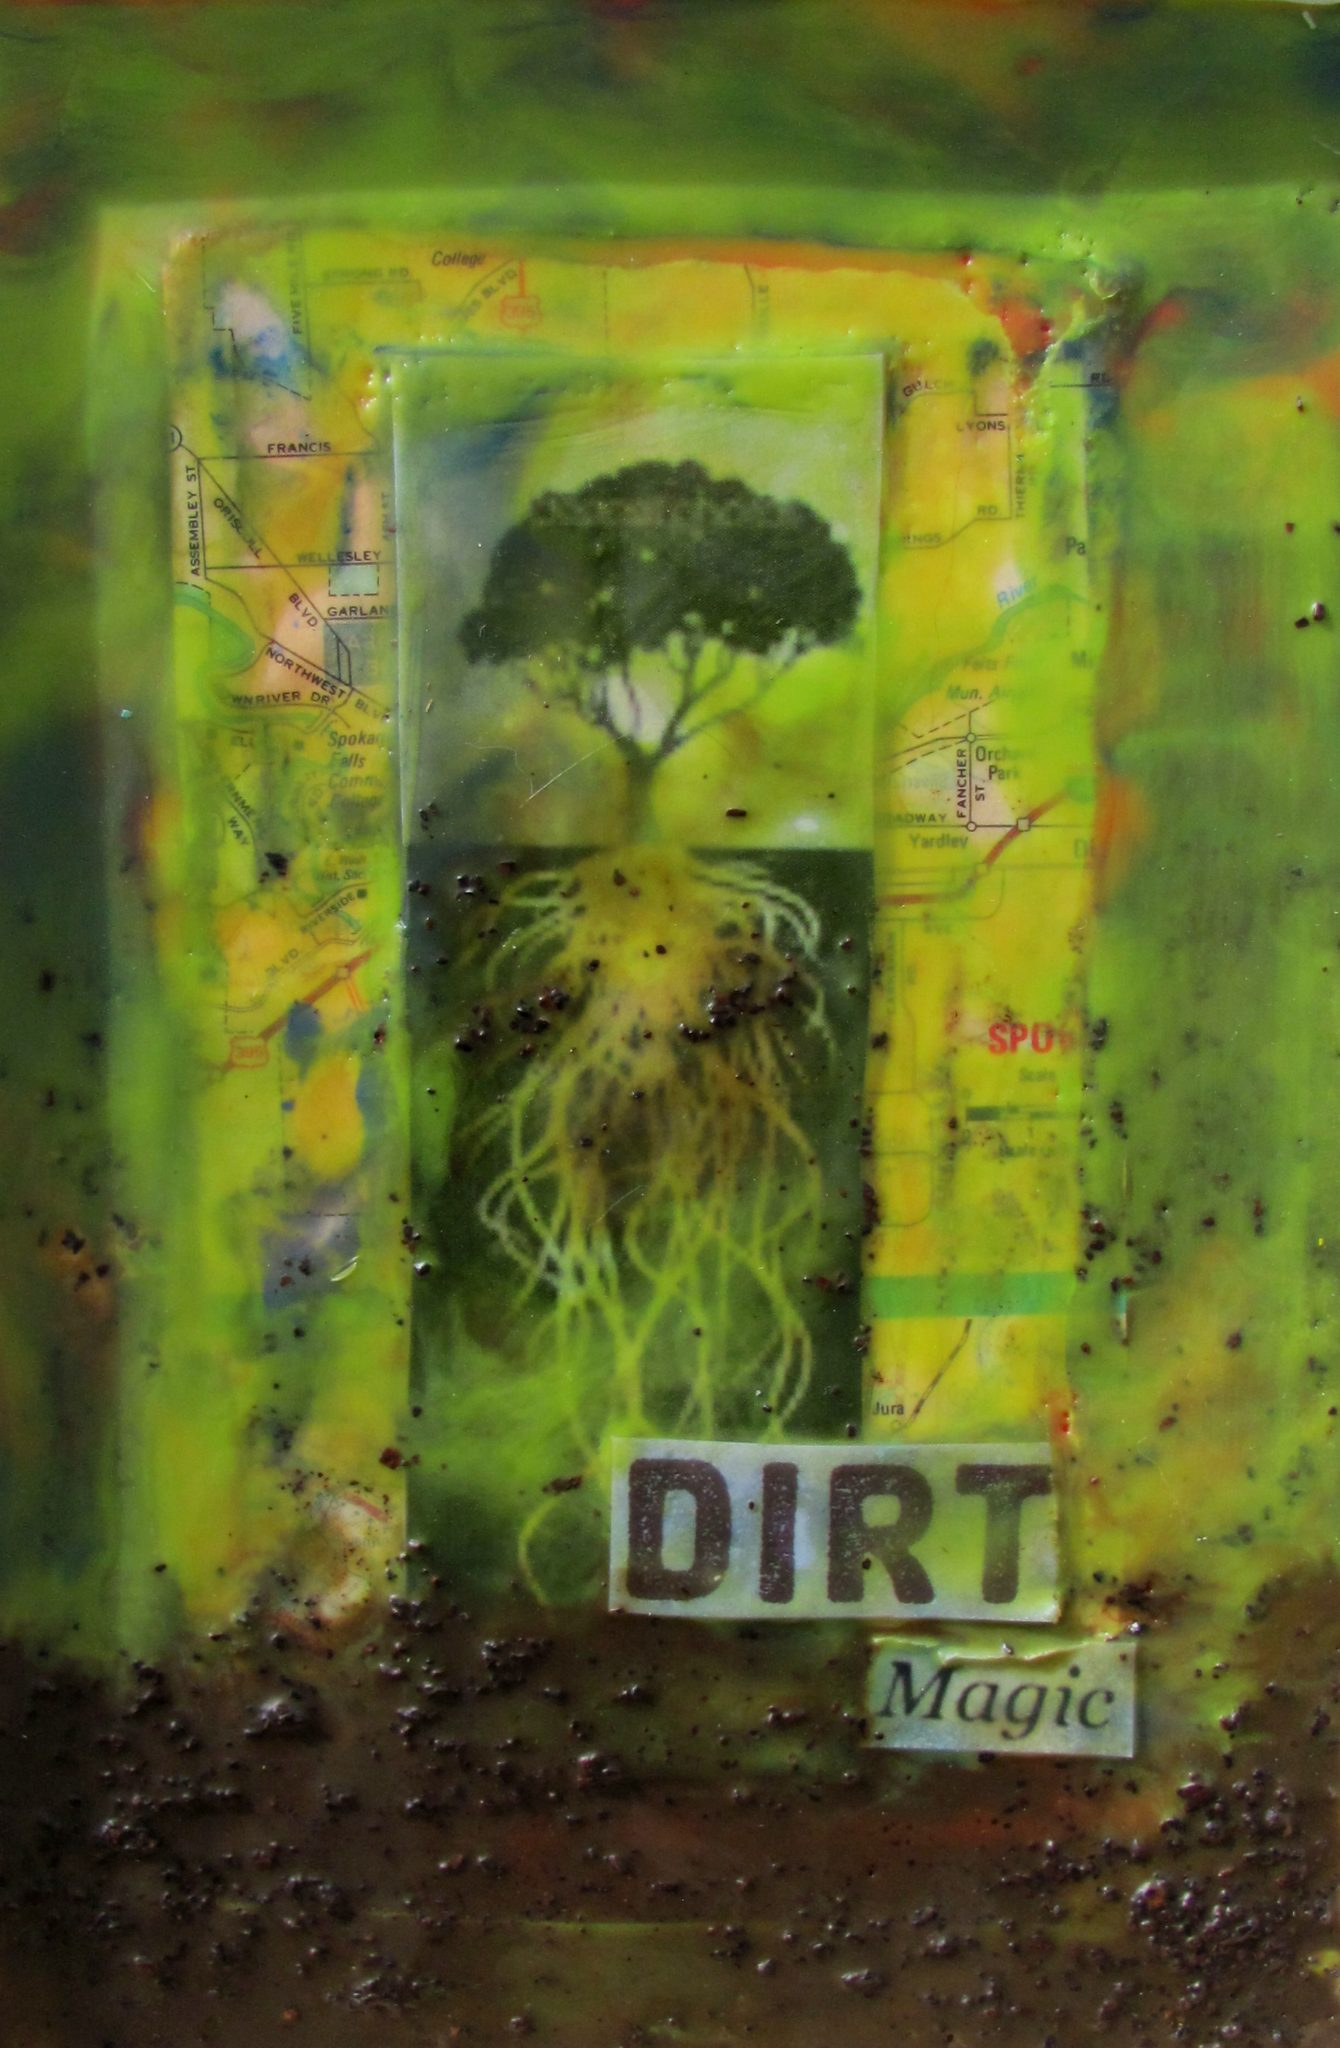 Dirt Magic, mixed media encaustic by Courtney Putnam